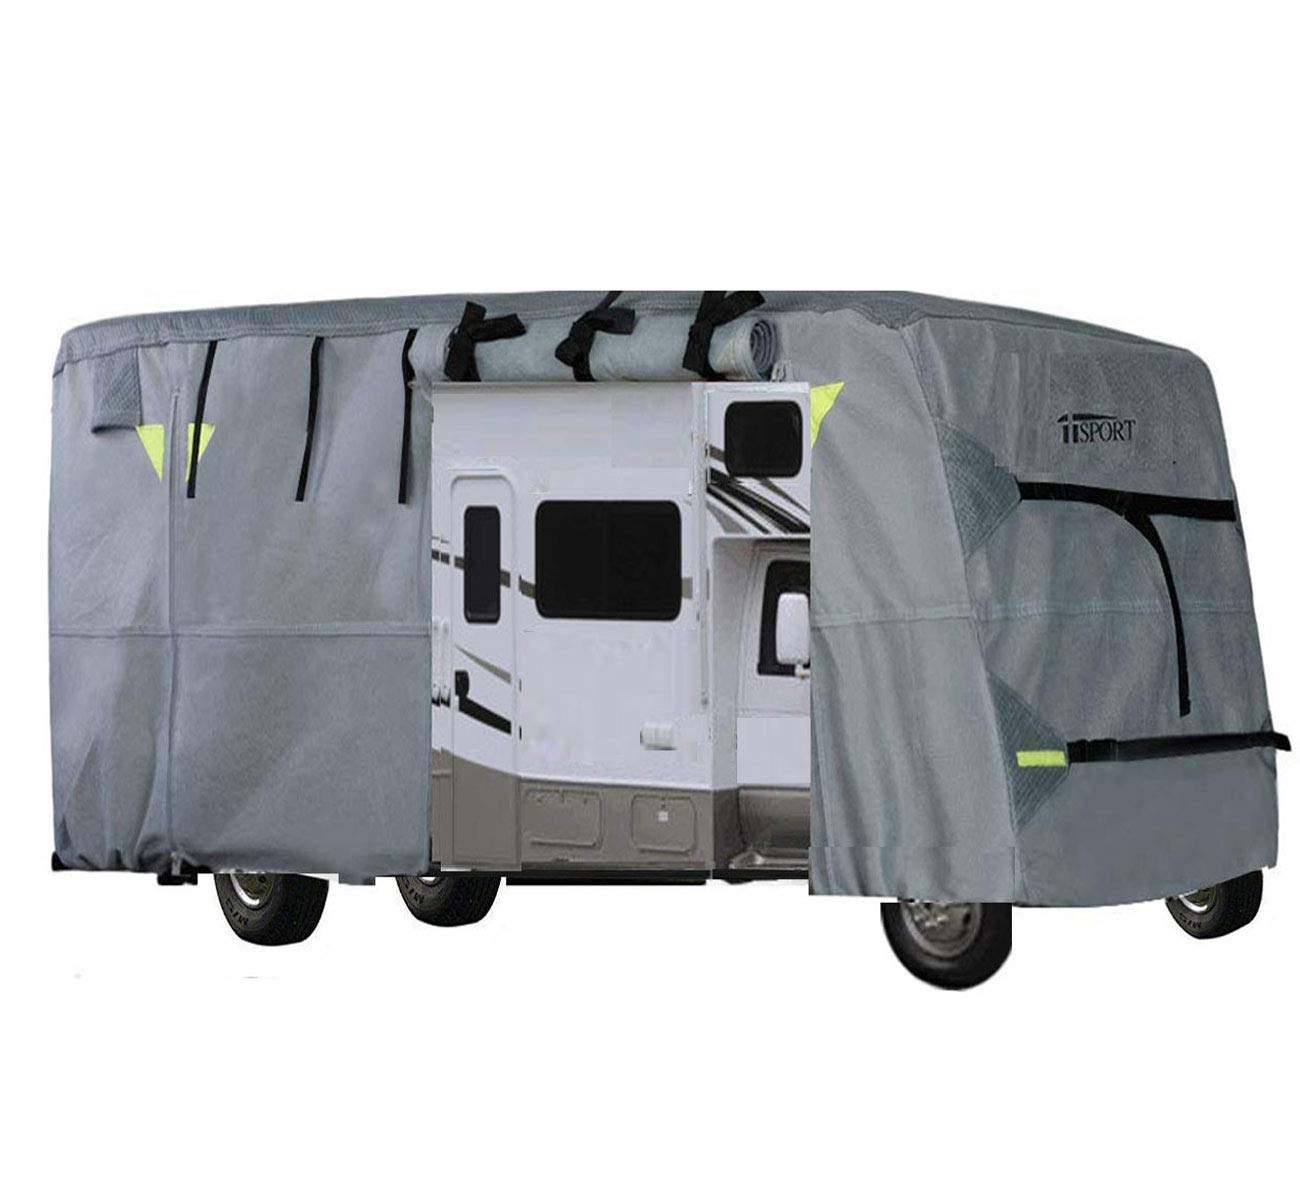 iiSPORT Class C Motorhome Cover Fits 23-26ft RVs Water Repellent RV Covers with Reflective Panels, Intergrated Strap Buckle, Multiple Zippered Panels for Easy Access to The Front, Back & Sides